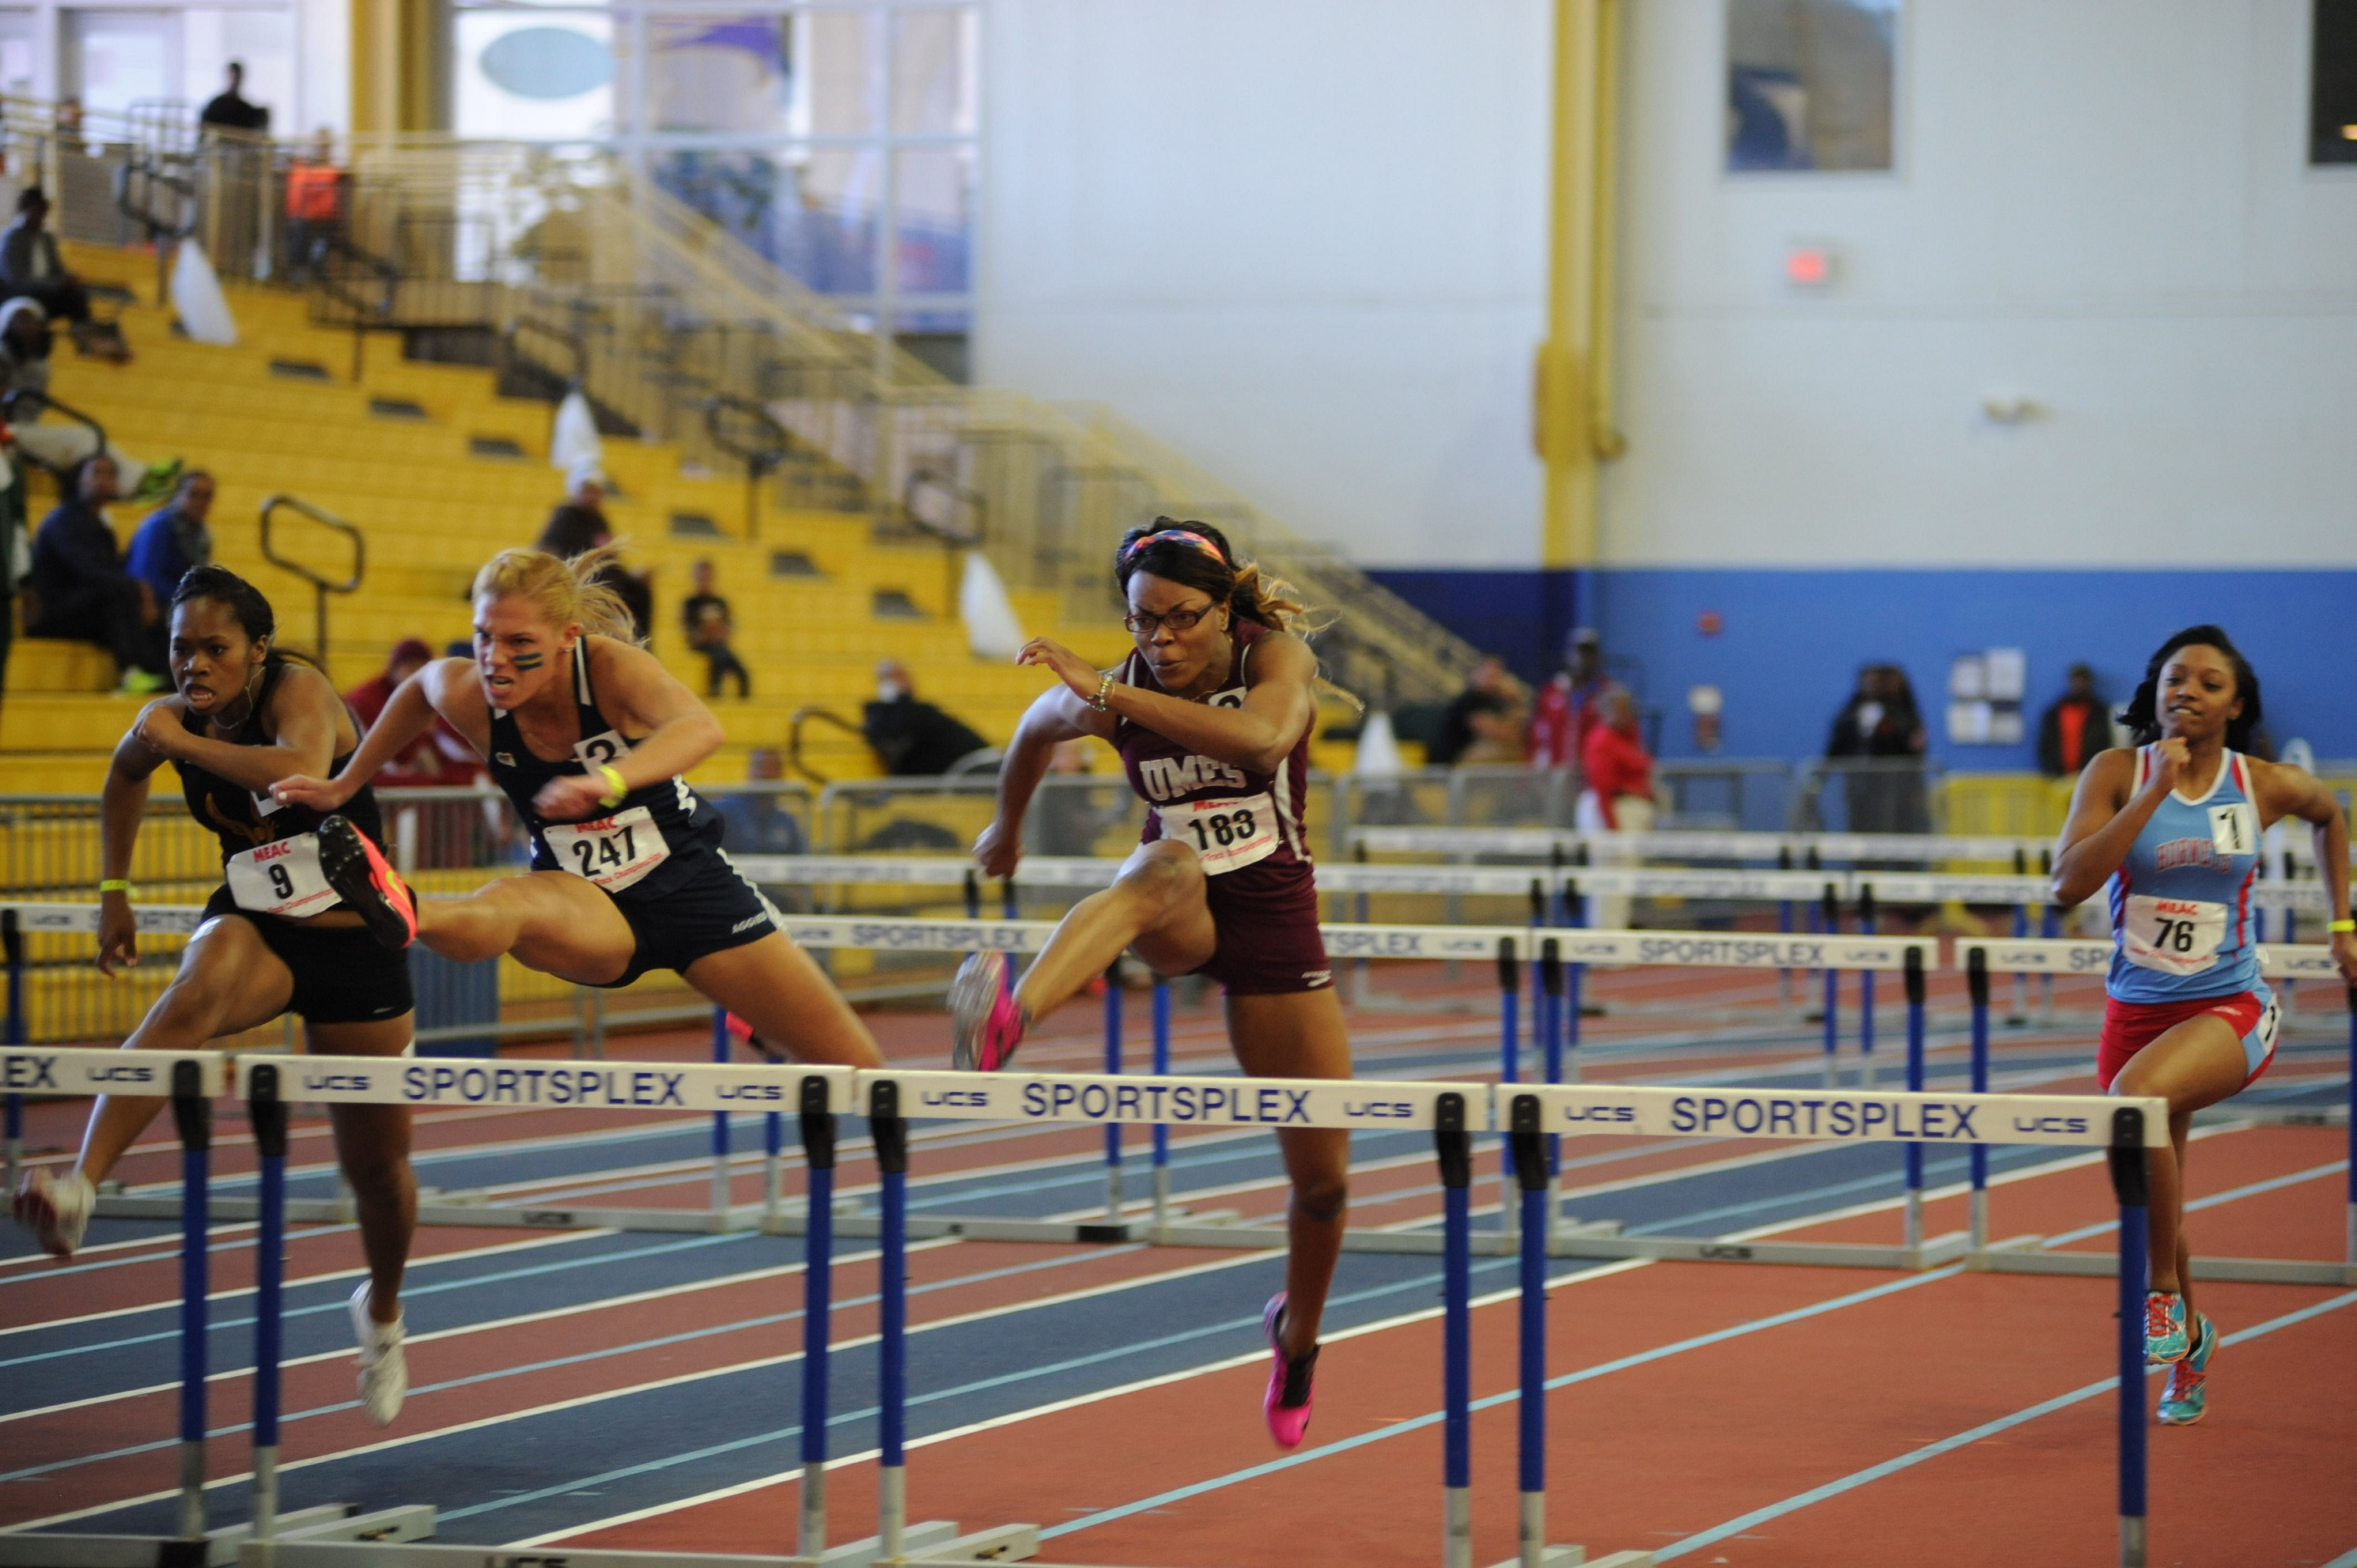 UMES Hurdler Breaks Record at Scarlet & White Invitational